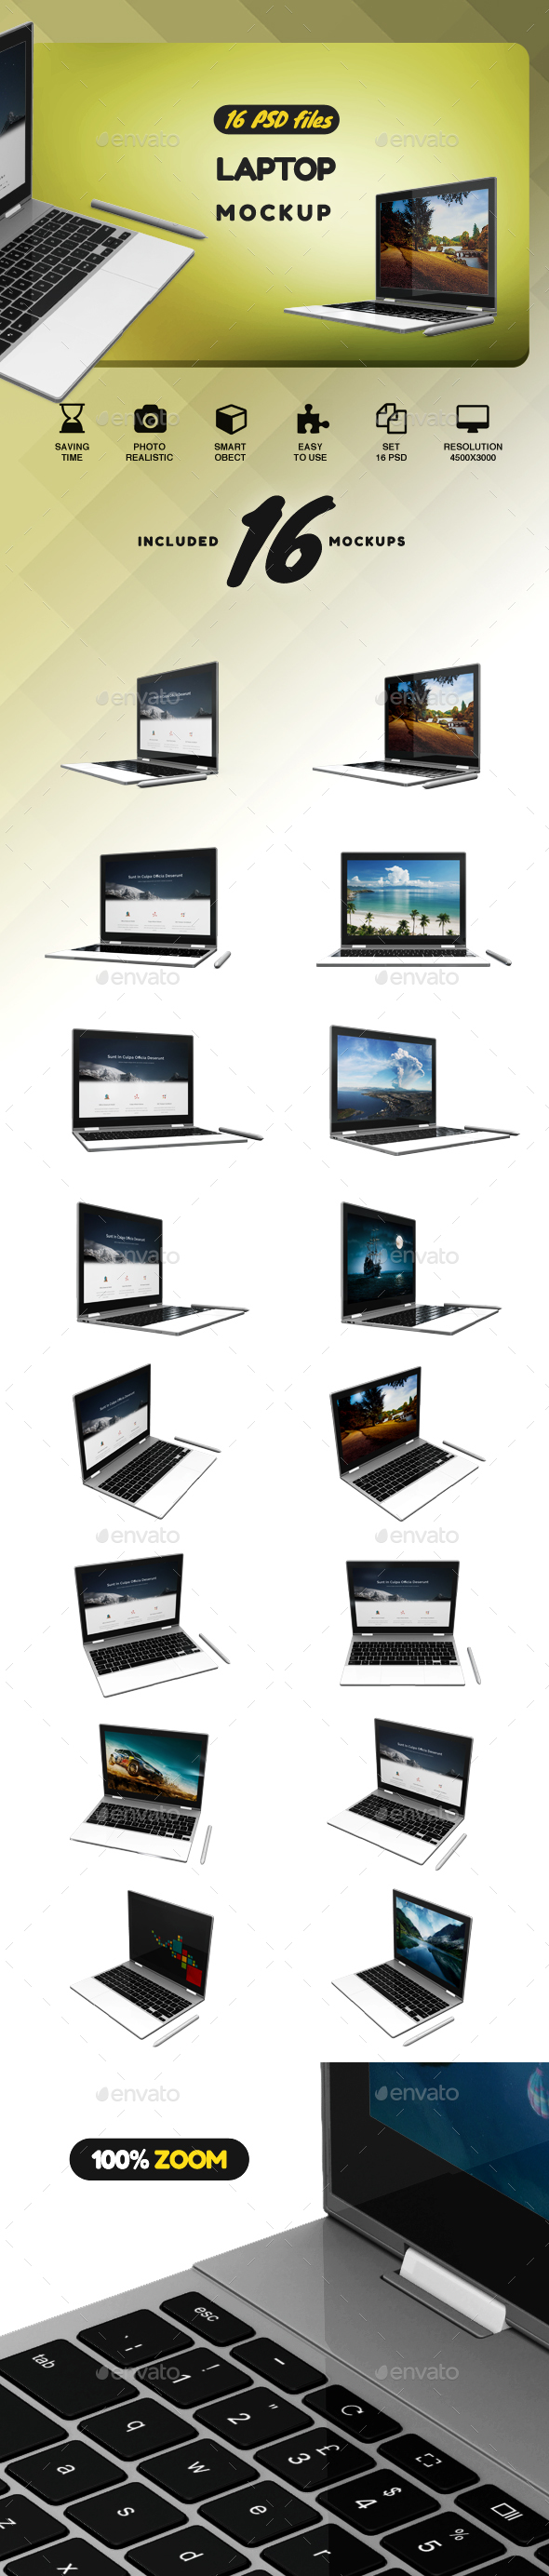 Laptop Pixelbook Mockup - Product Mock-Ups Graphics